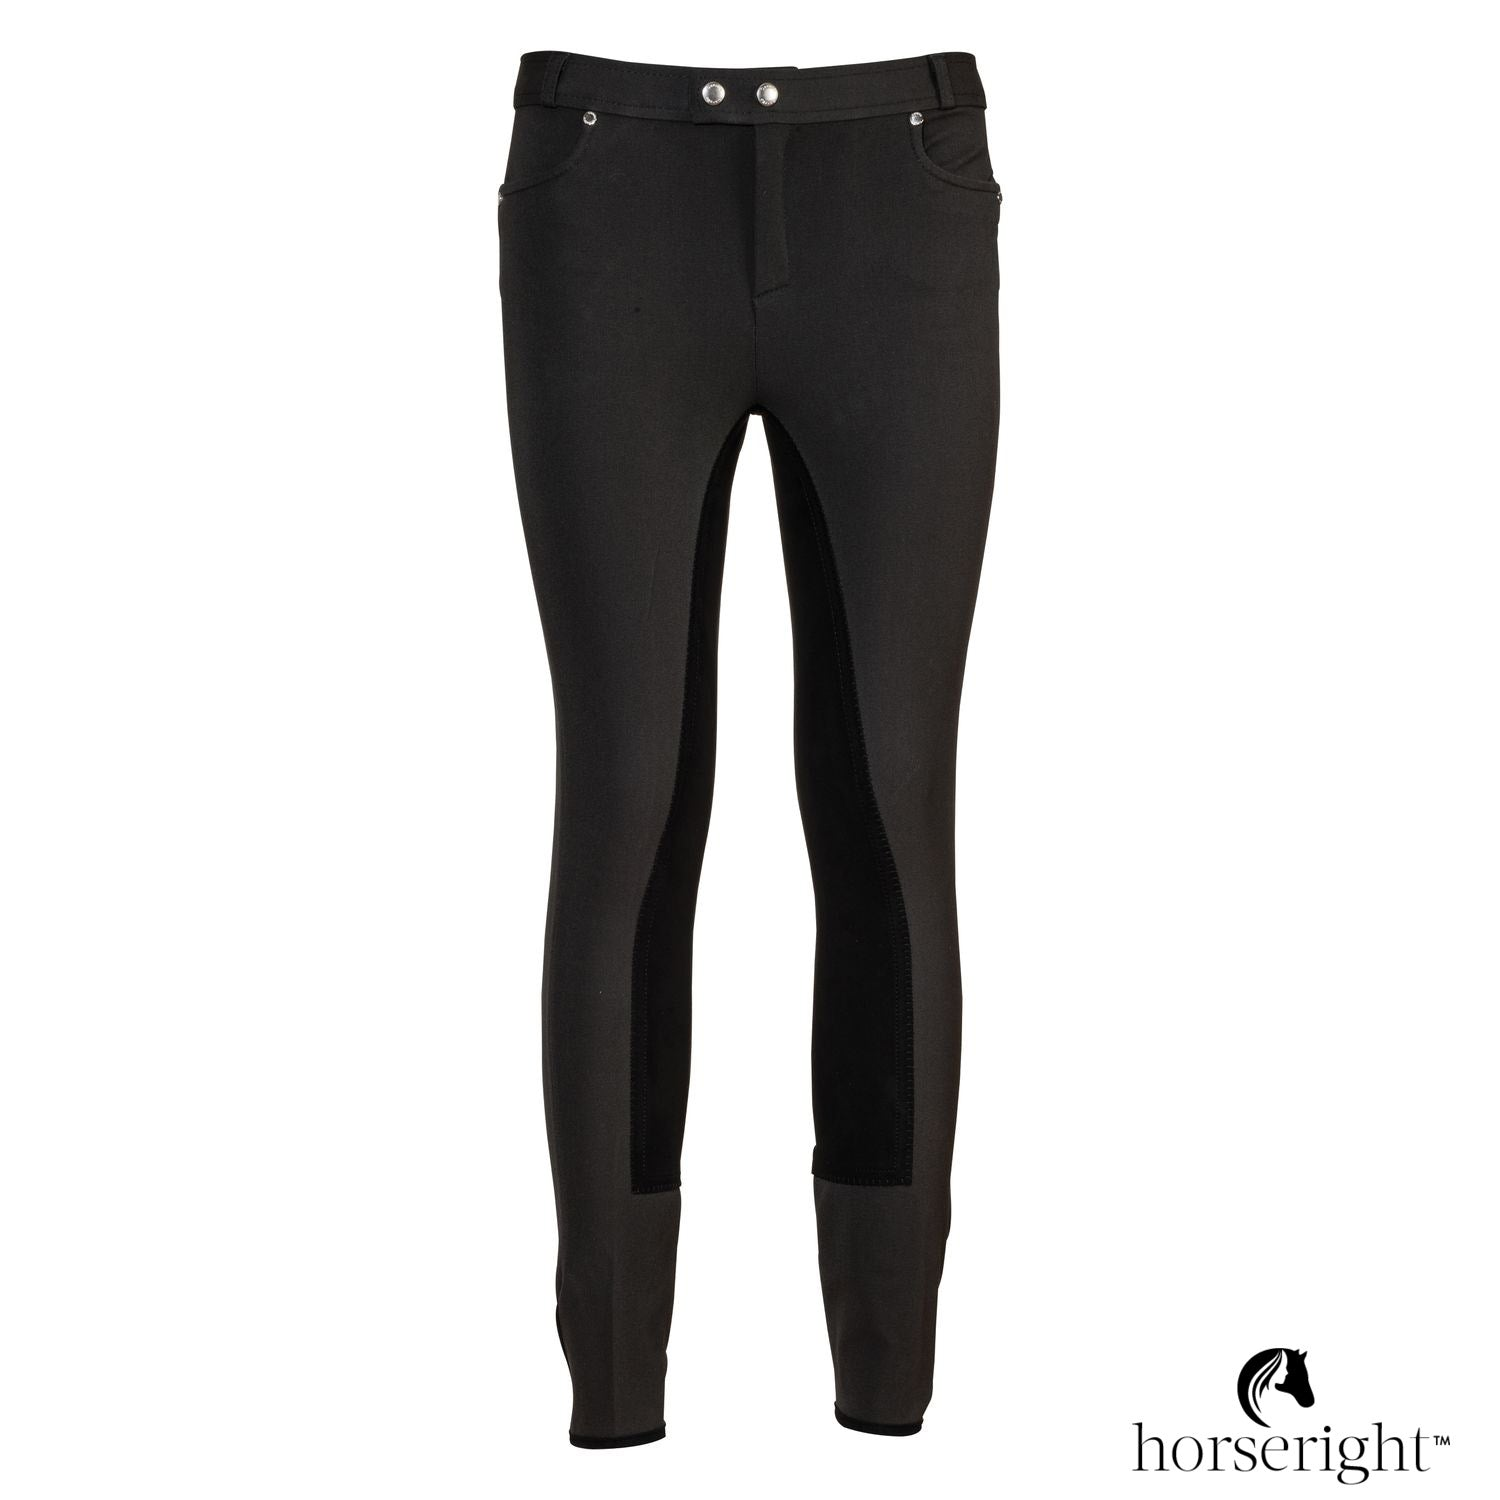 Cavallo Clio Children's Jodhpurs